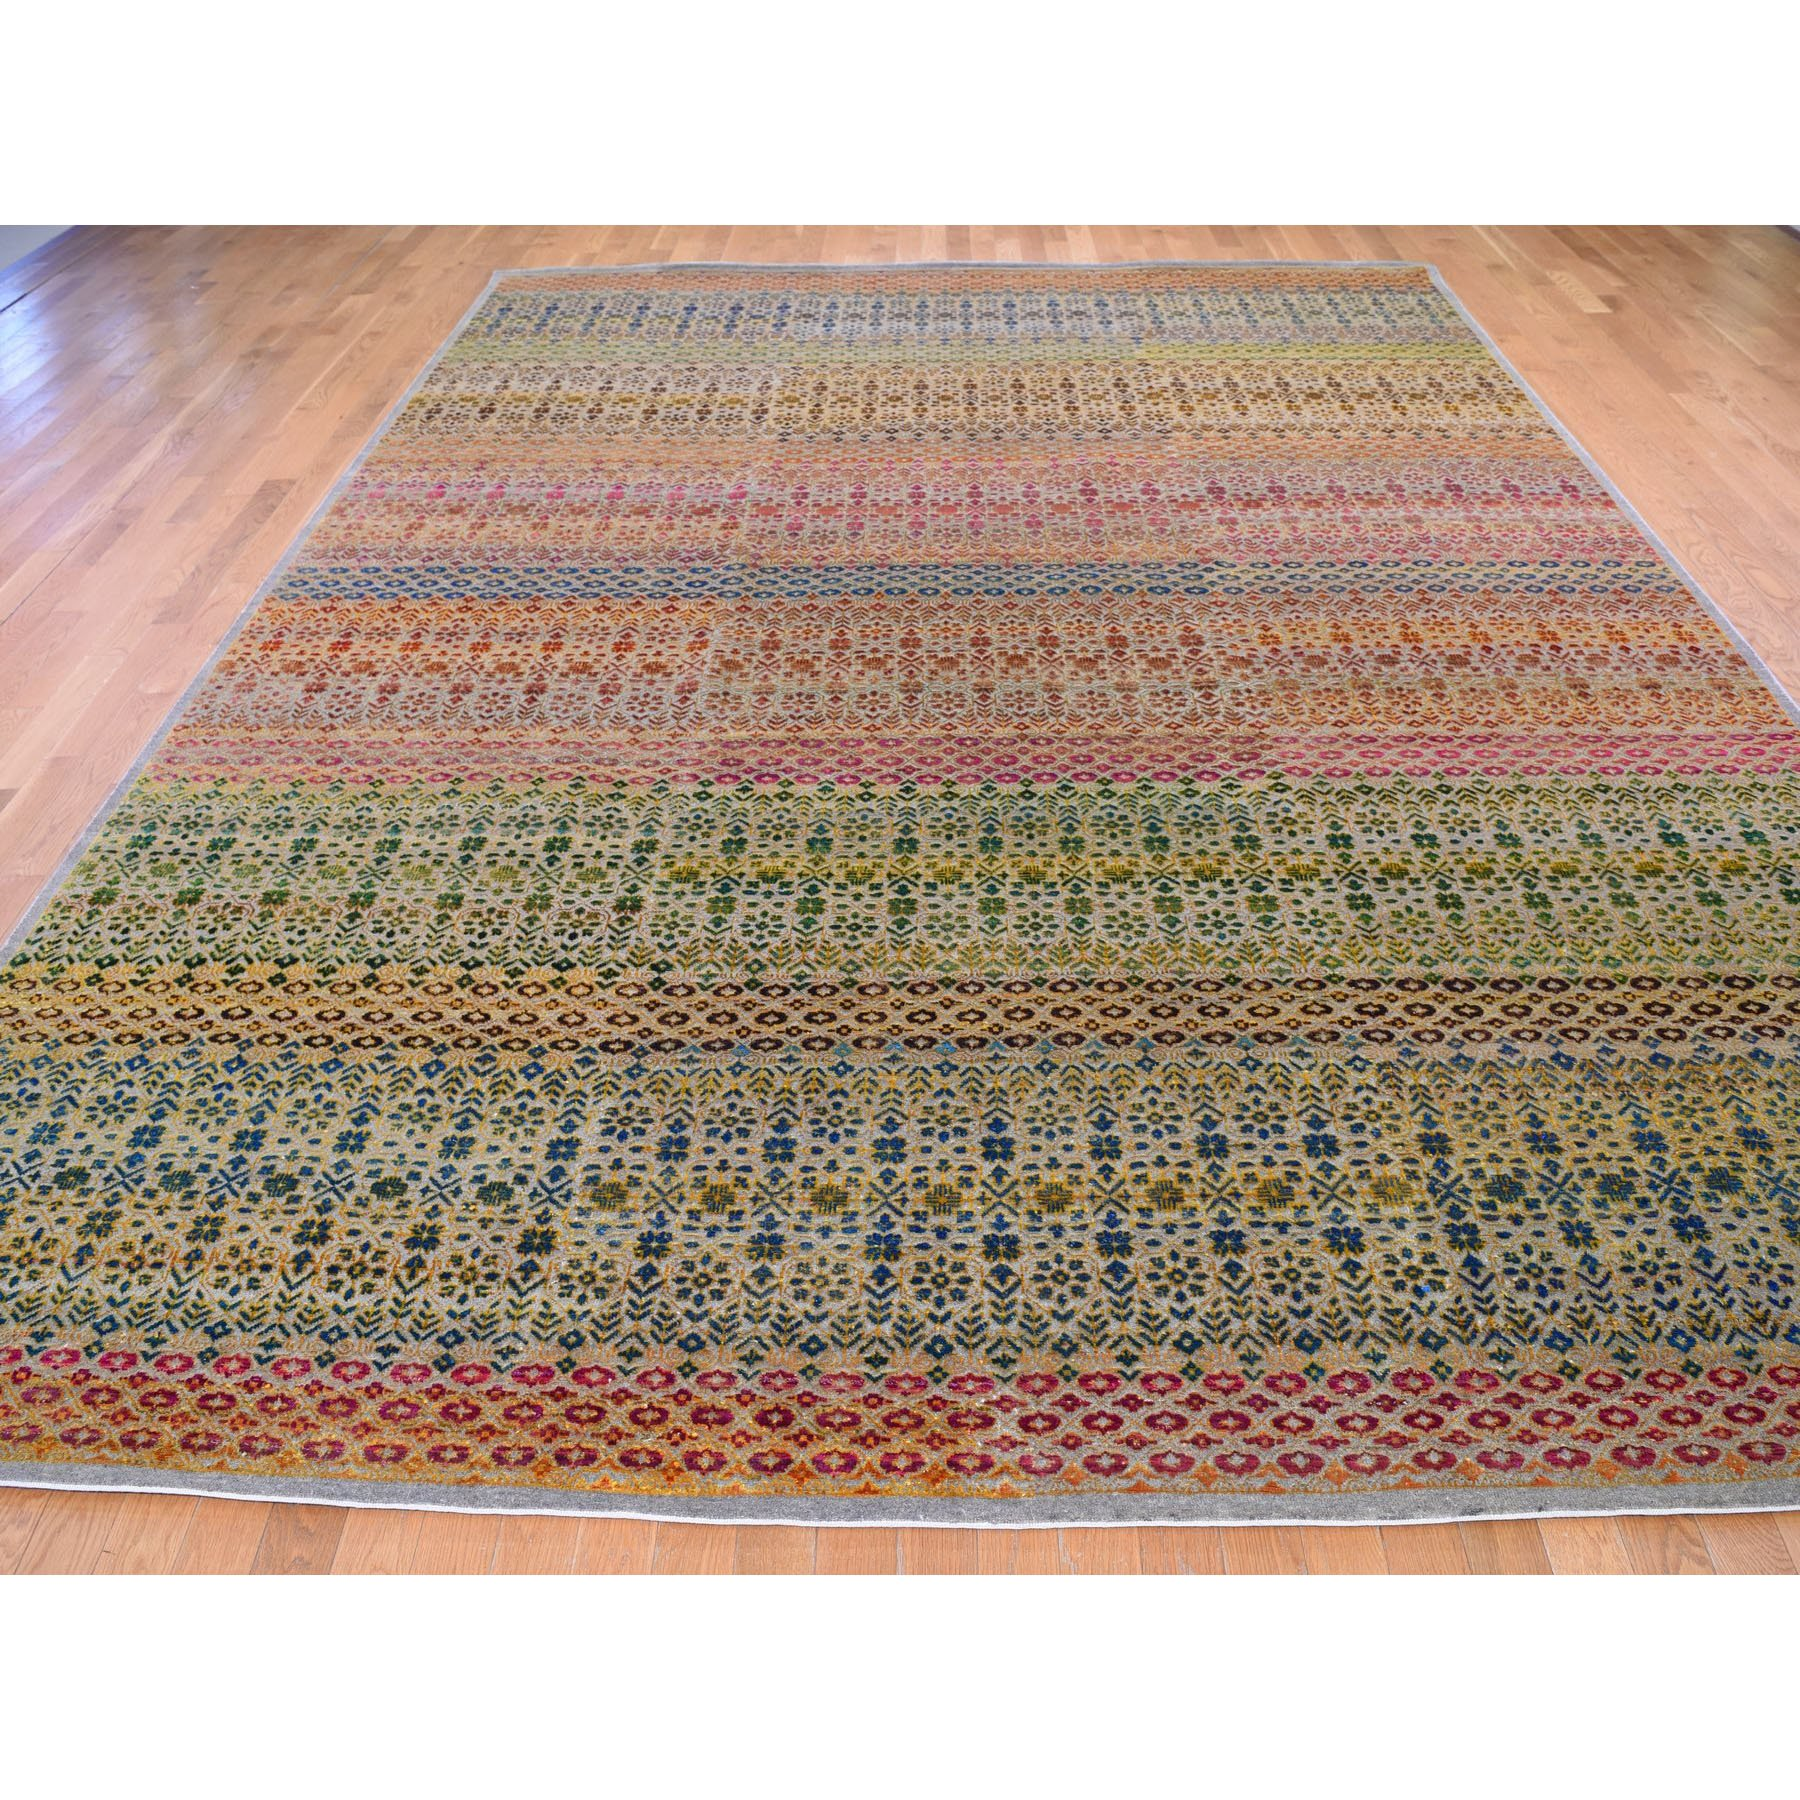 10-x14- Colorful Grass Design Sari Silk Textured Wool Modern Hand Knotted Oriental Rug